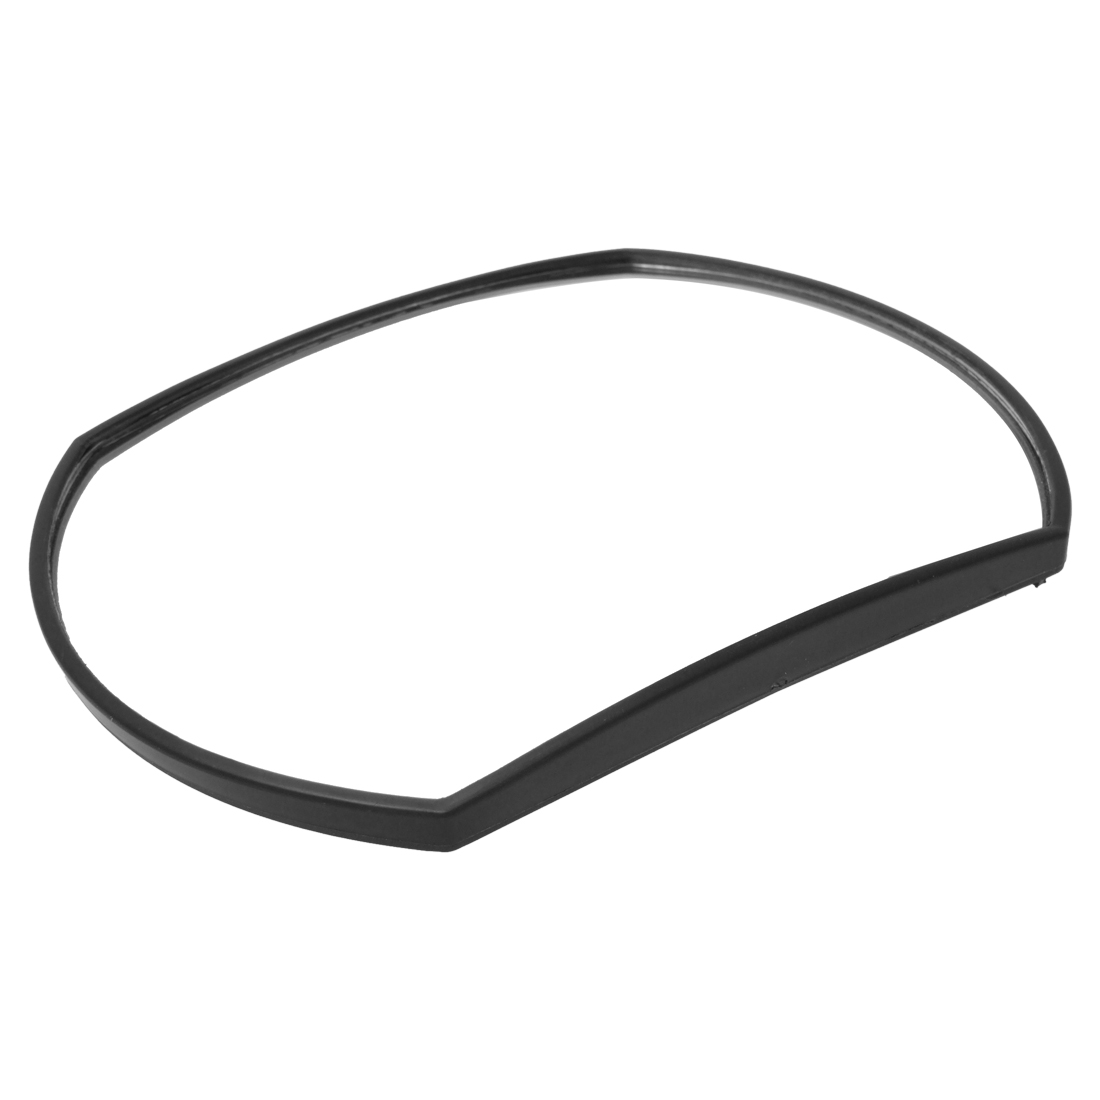 Automotive Vehicle Side Blind Spot Wide Angle View Mirror